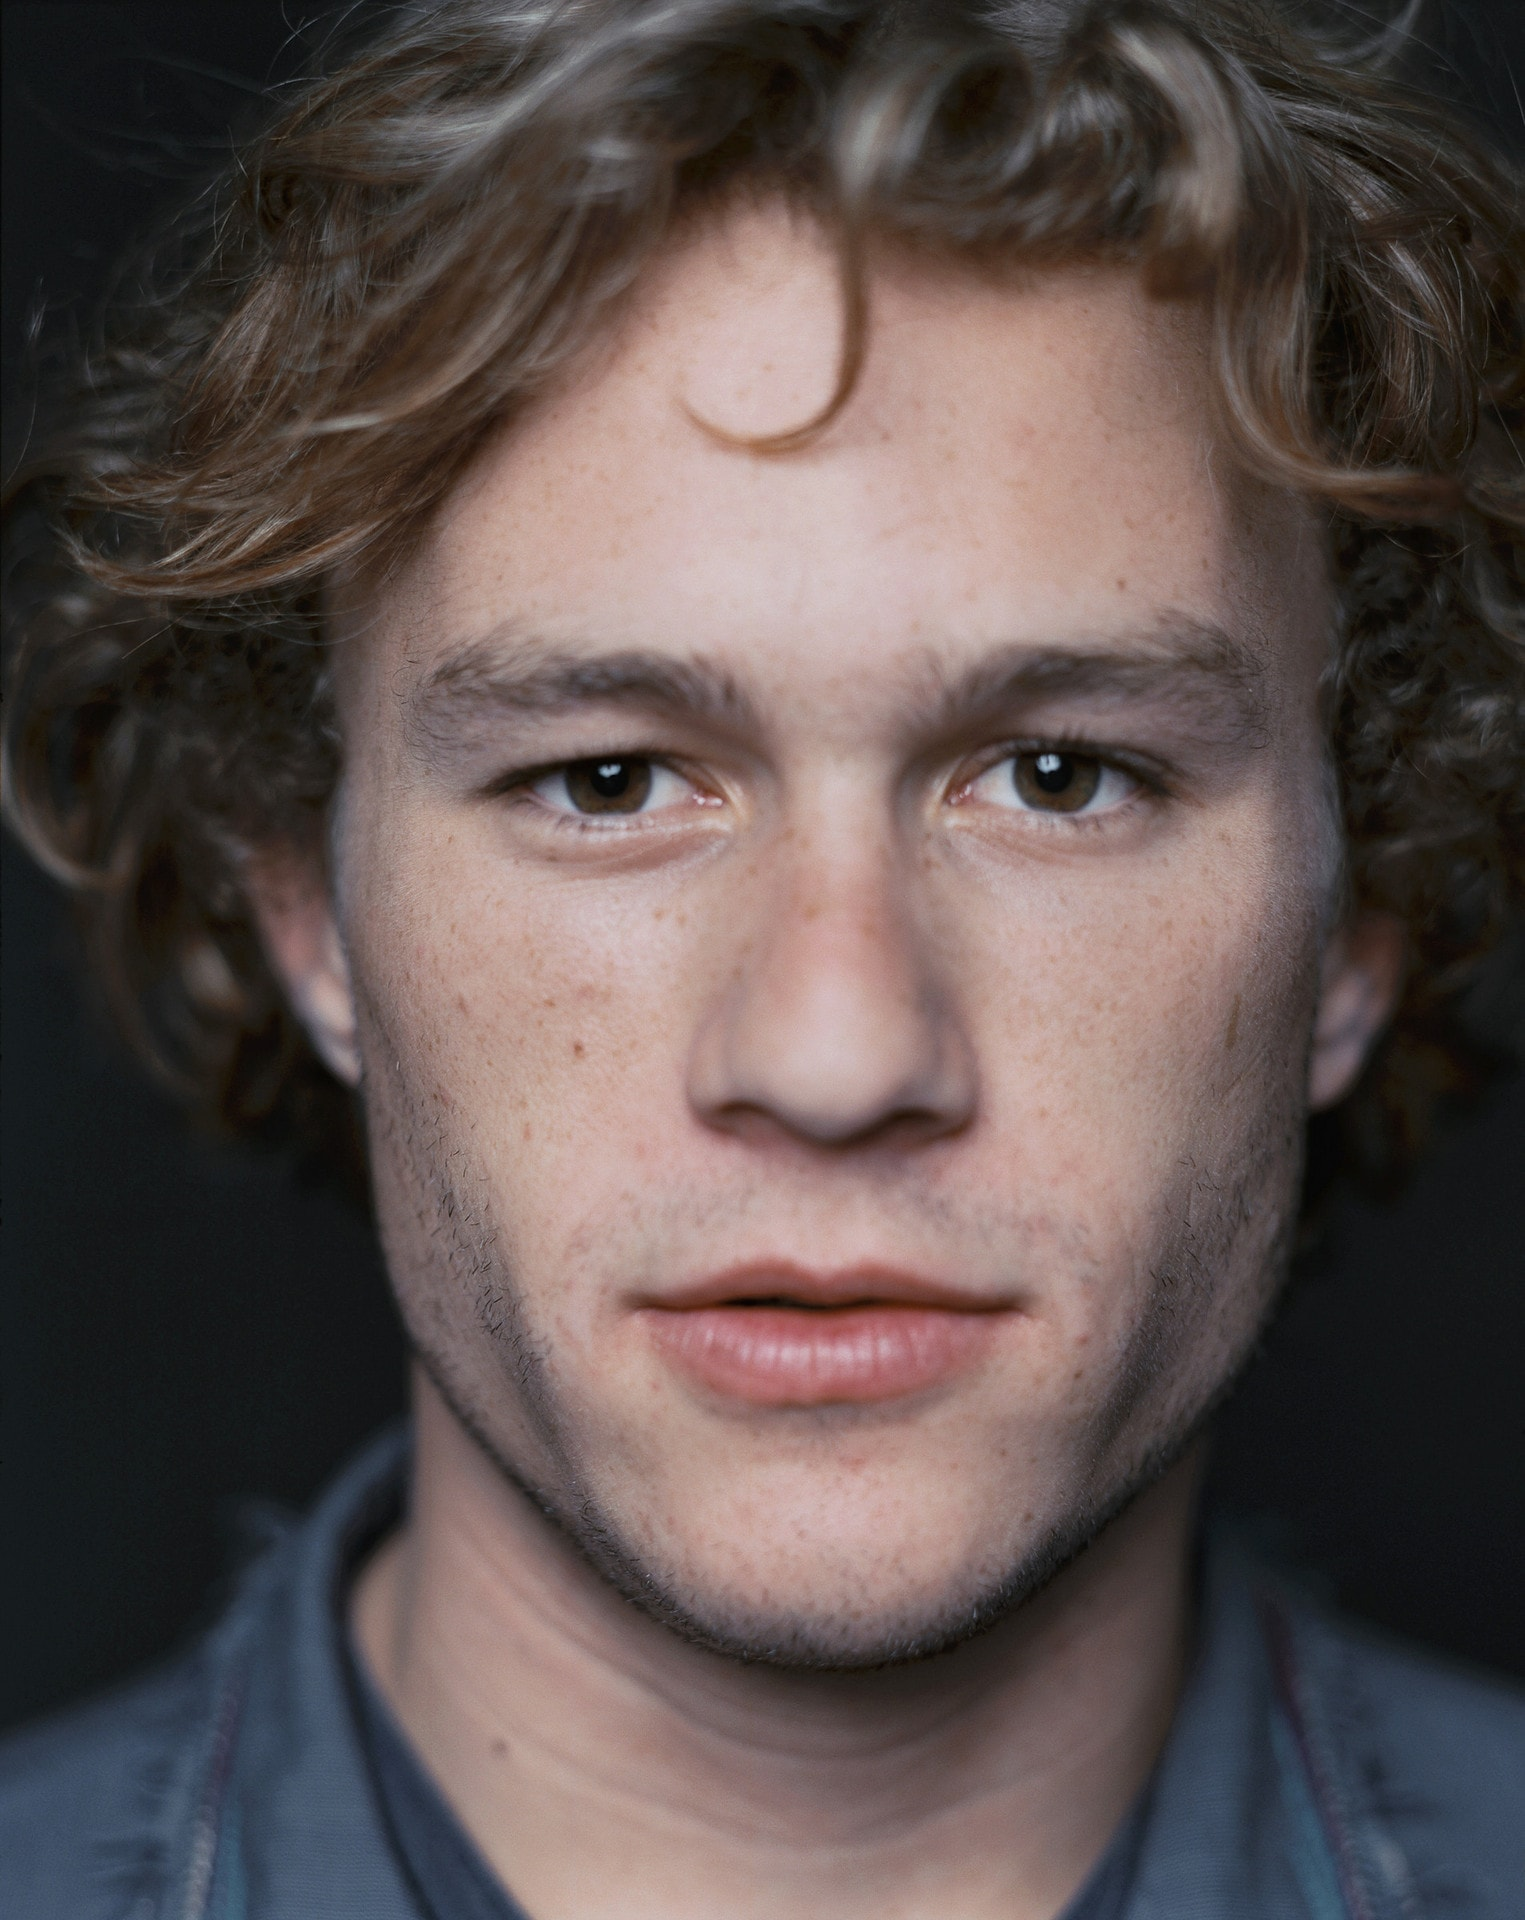 Heath ledger bisexual